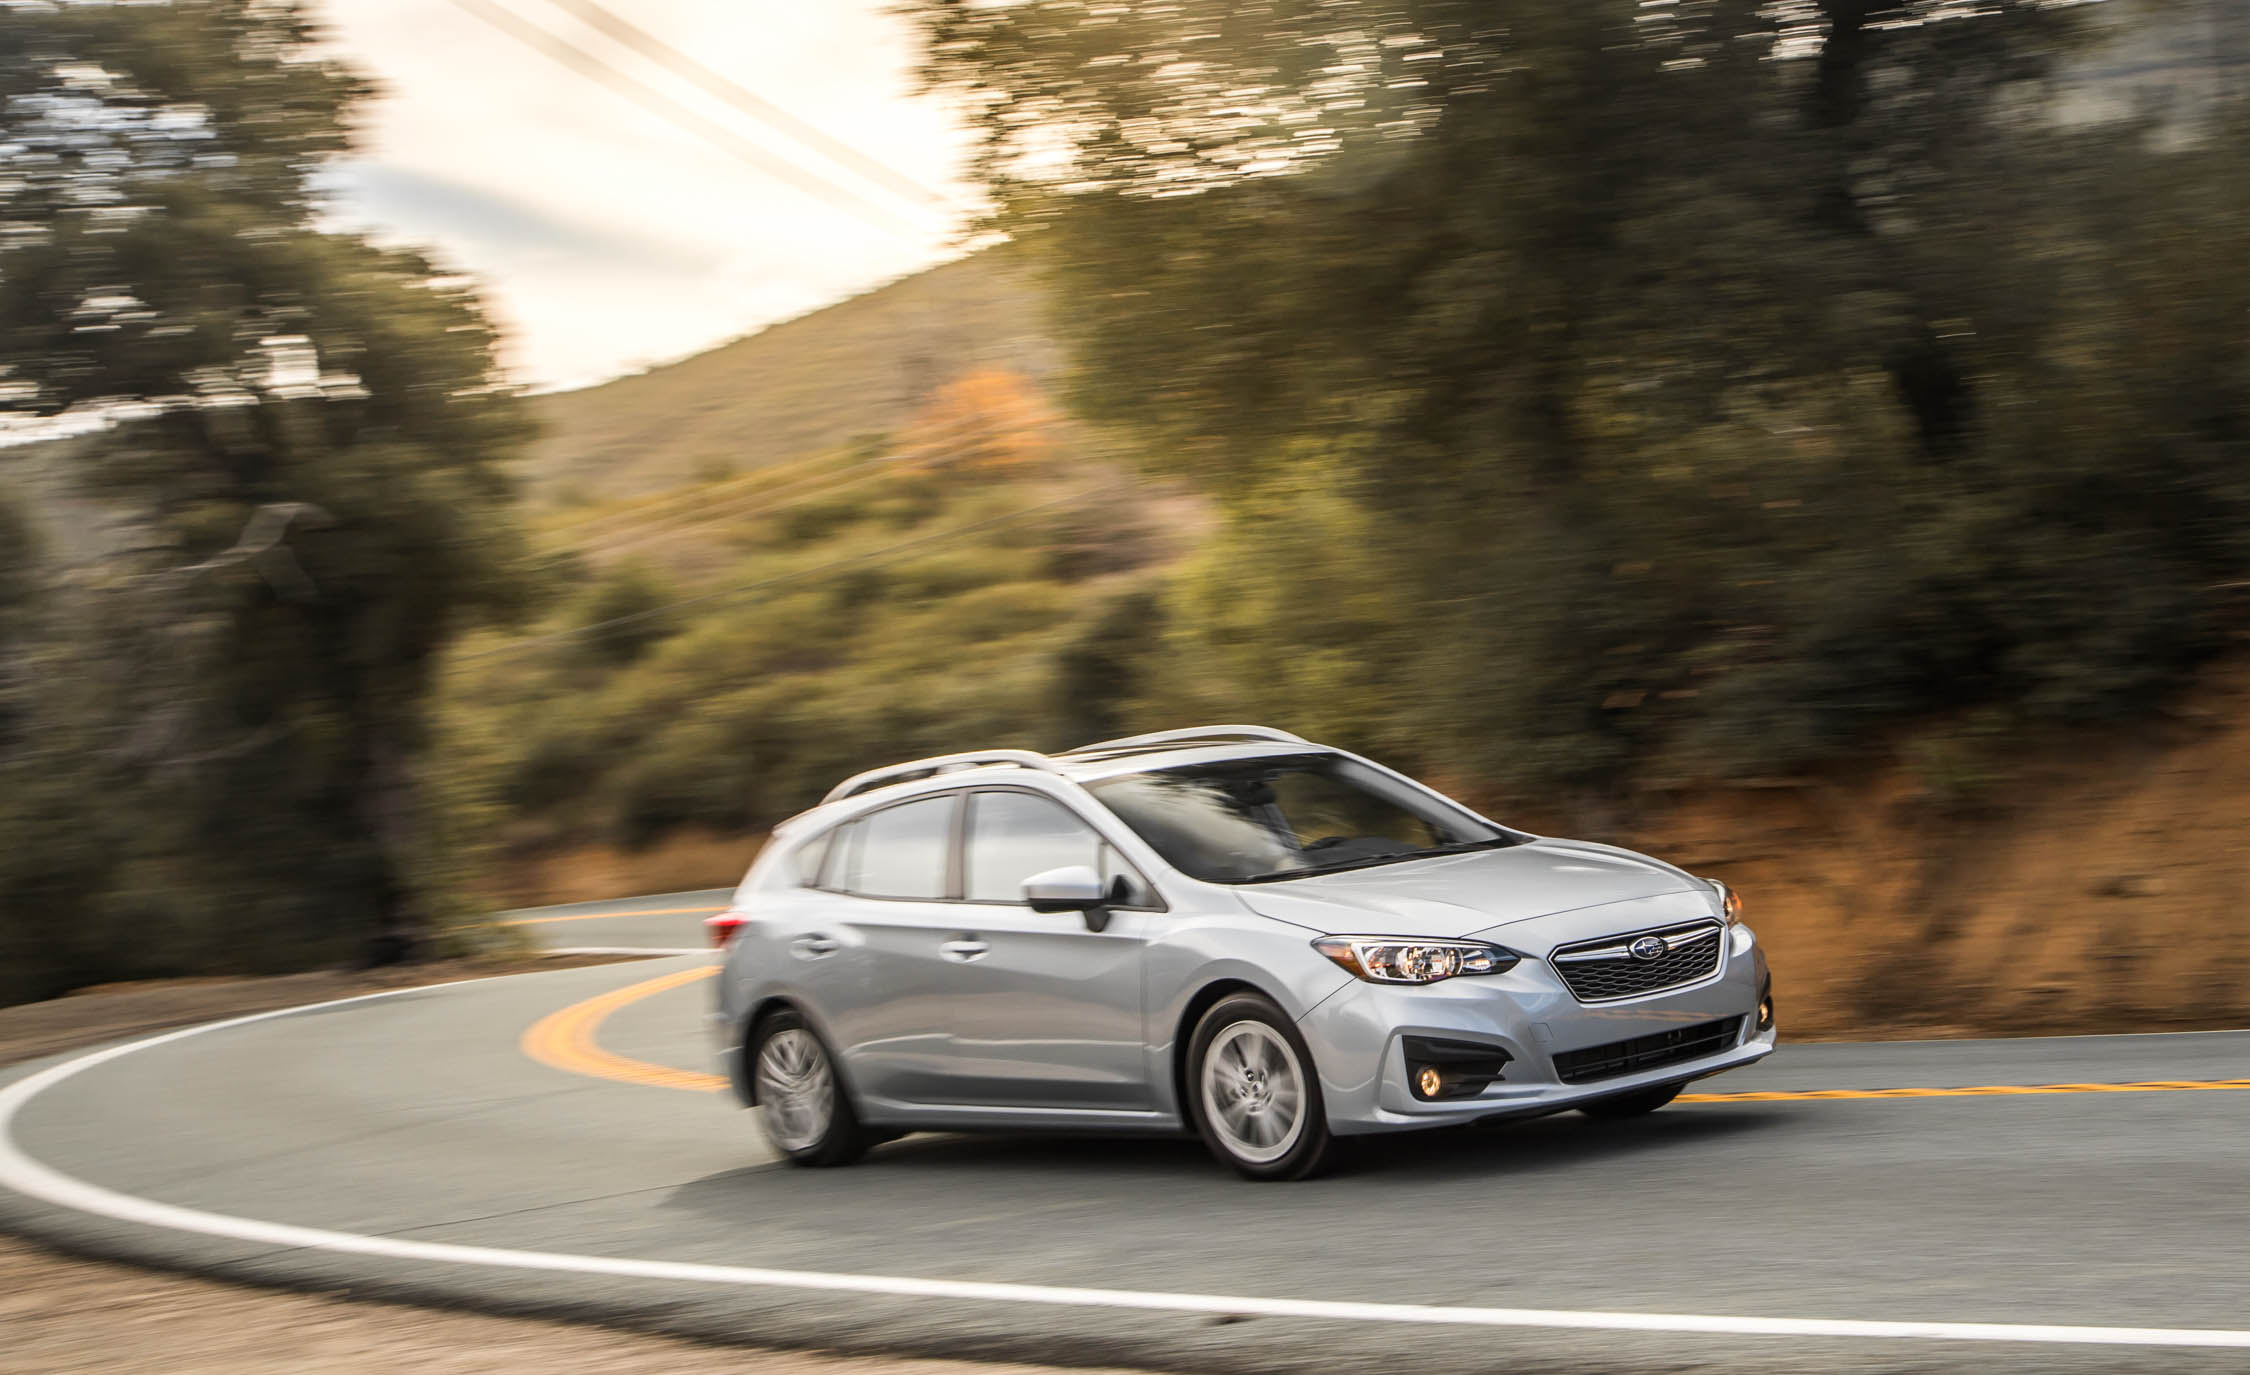 2017 Subaru Impreza Hatchback (Photo 16 of 33)